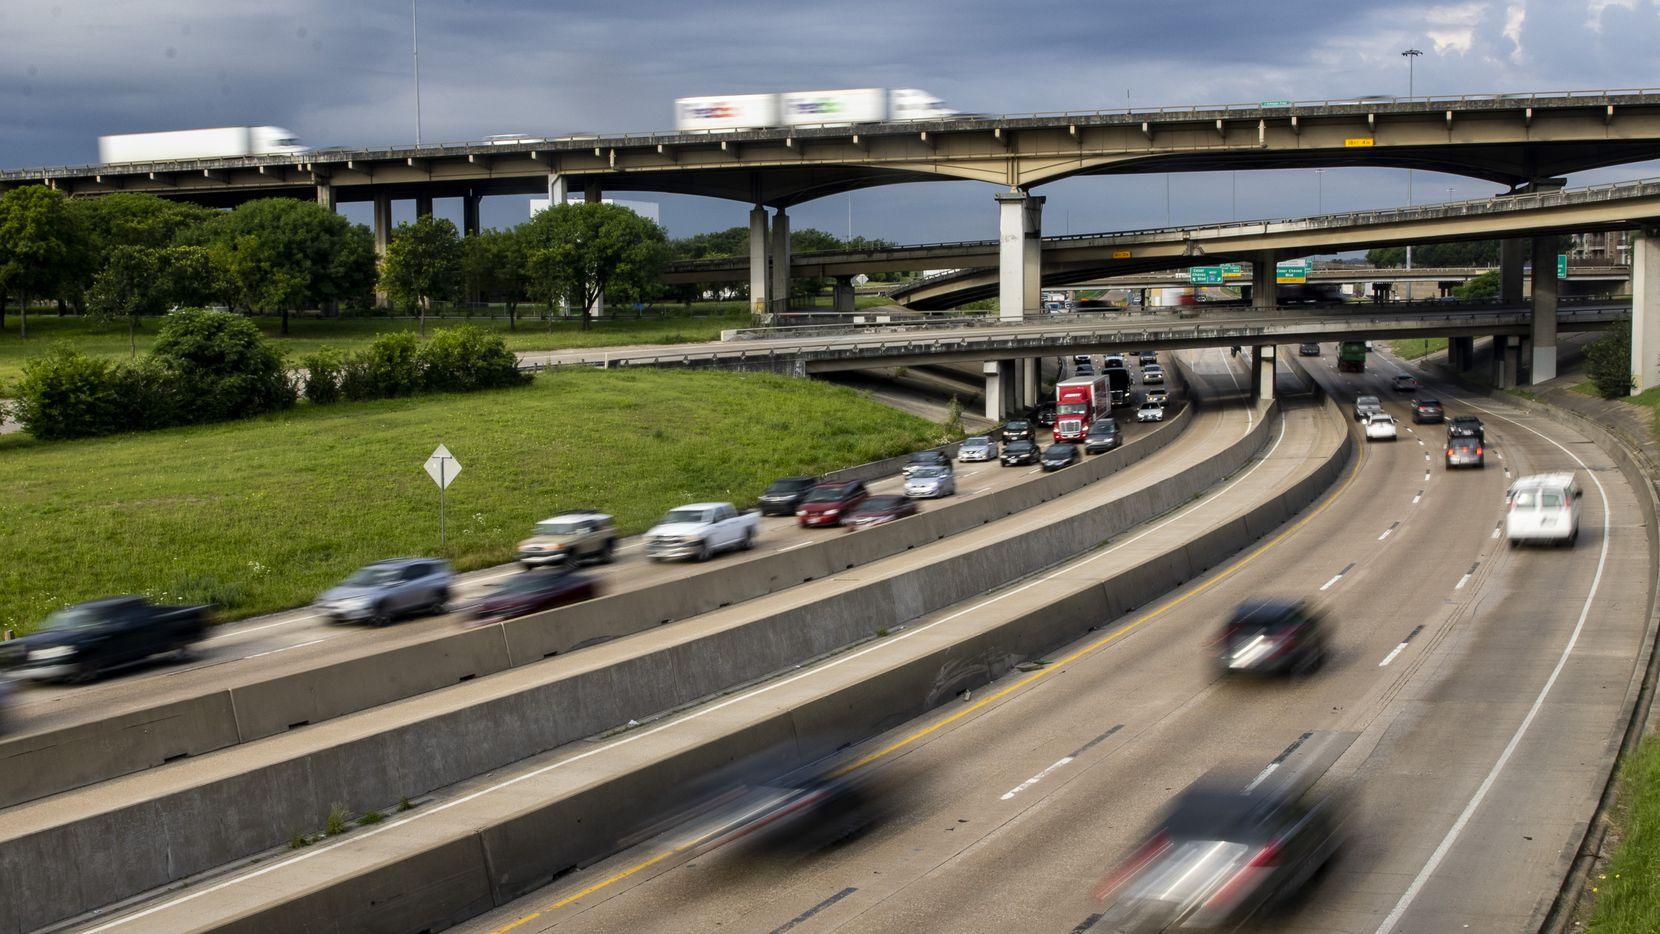 People make their way through morning rush hour on eastbound Interstate 30 in Dallas on Friday, June 4, 2021. The Texas Department of Transportation is set to this month unveil plans for two of the city's major interstates: 30 and 345. The goal for both projects is to restitch of city's underserved communities with more vibrant parts. The decades-long projects will bring together South Dallas, Fair Park, Deep Ellum and downtown. (Lynda M. González/The Dallas Morning News)